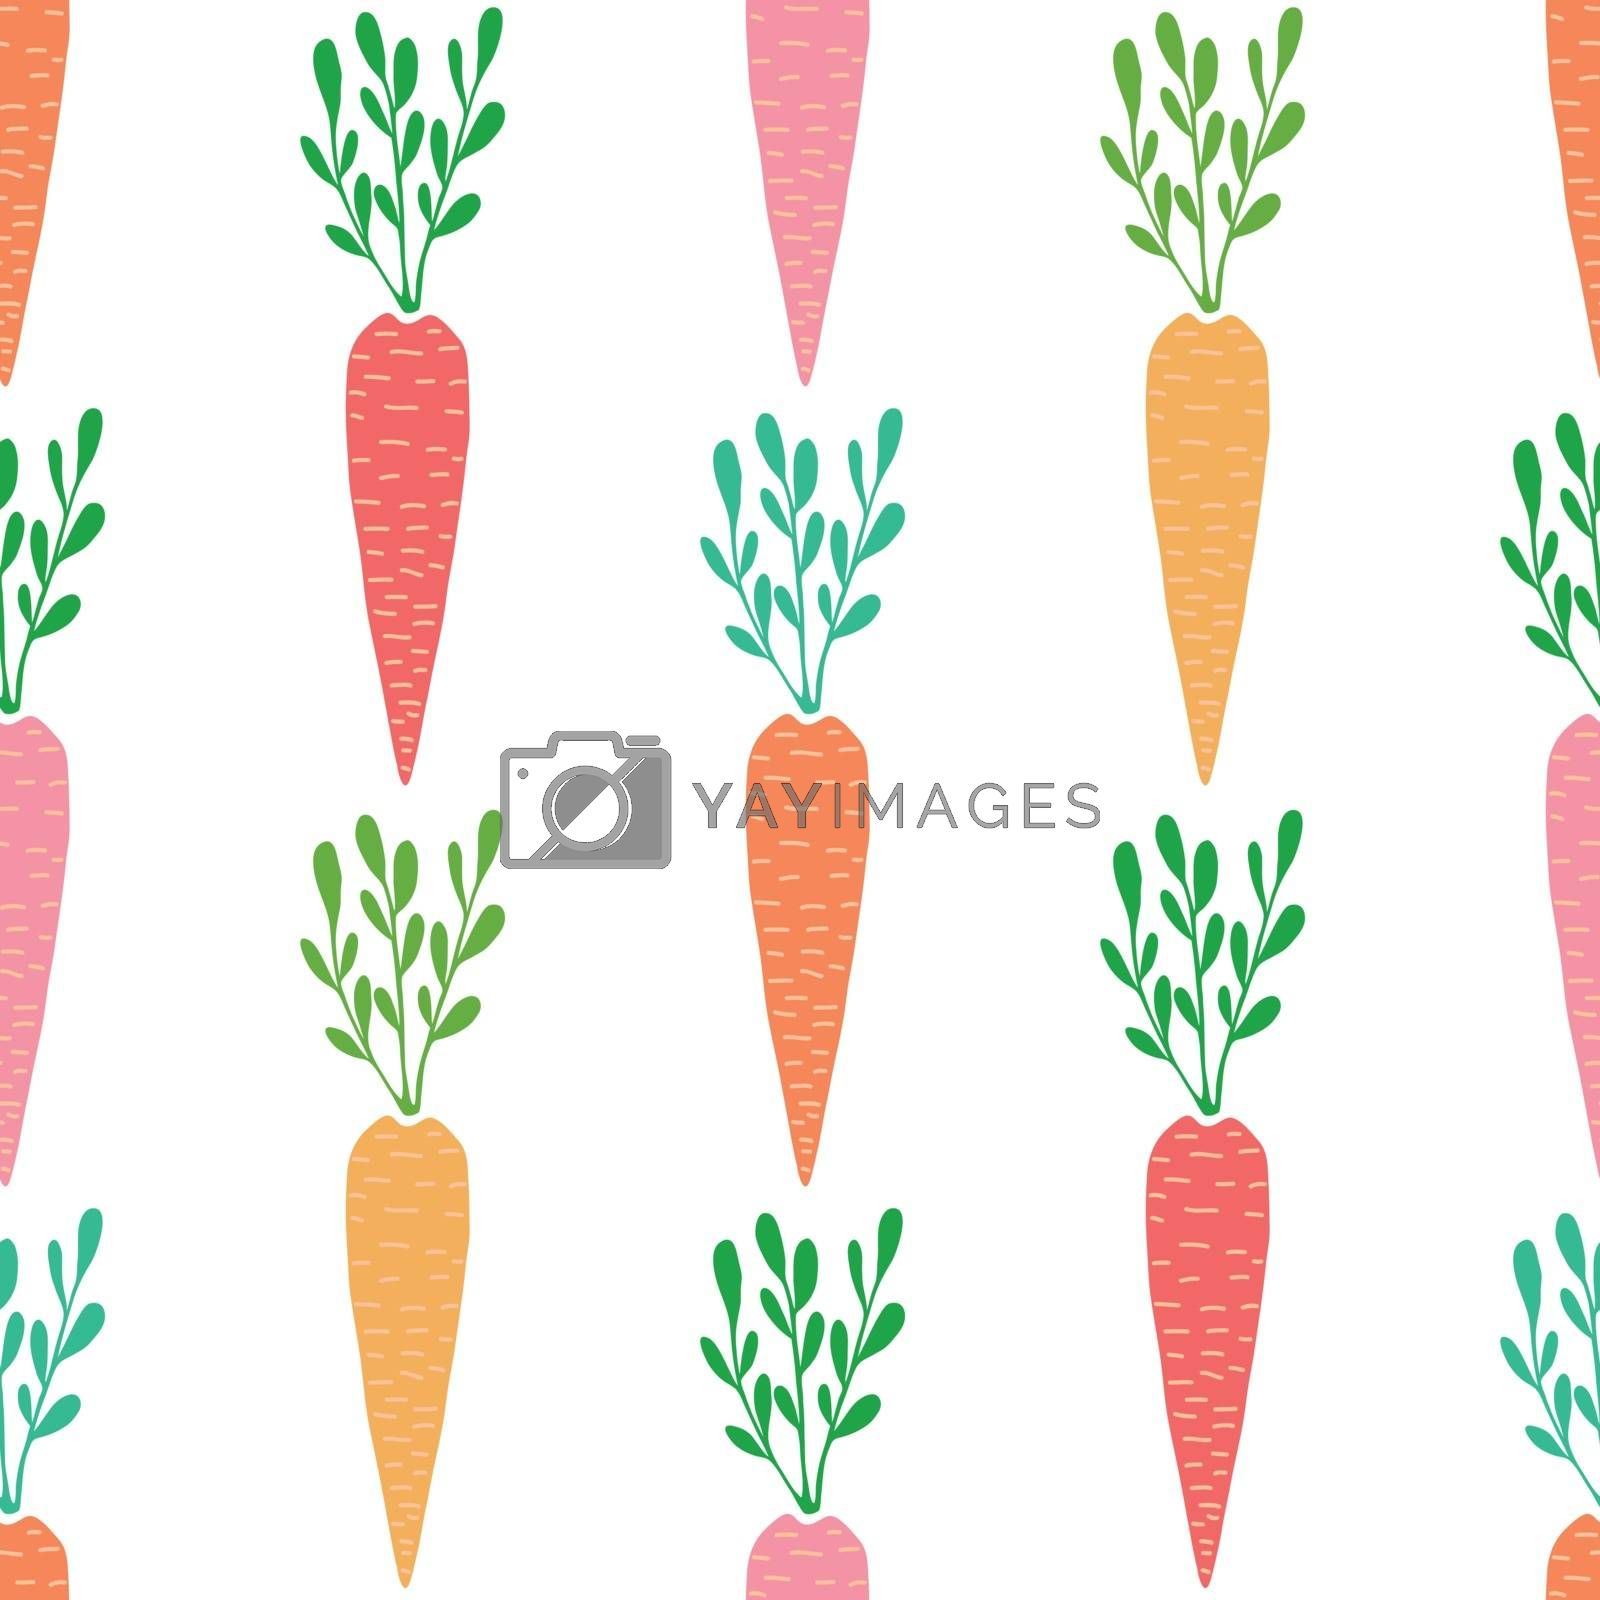 Vector yummy carrots seamless pattern background graphic design